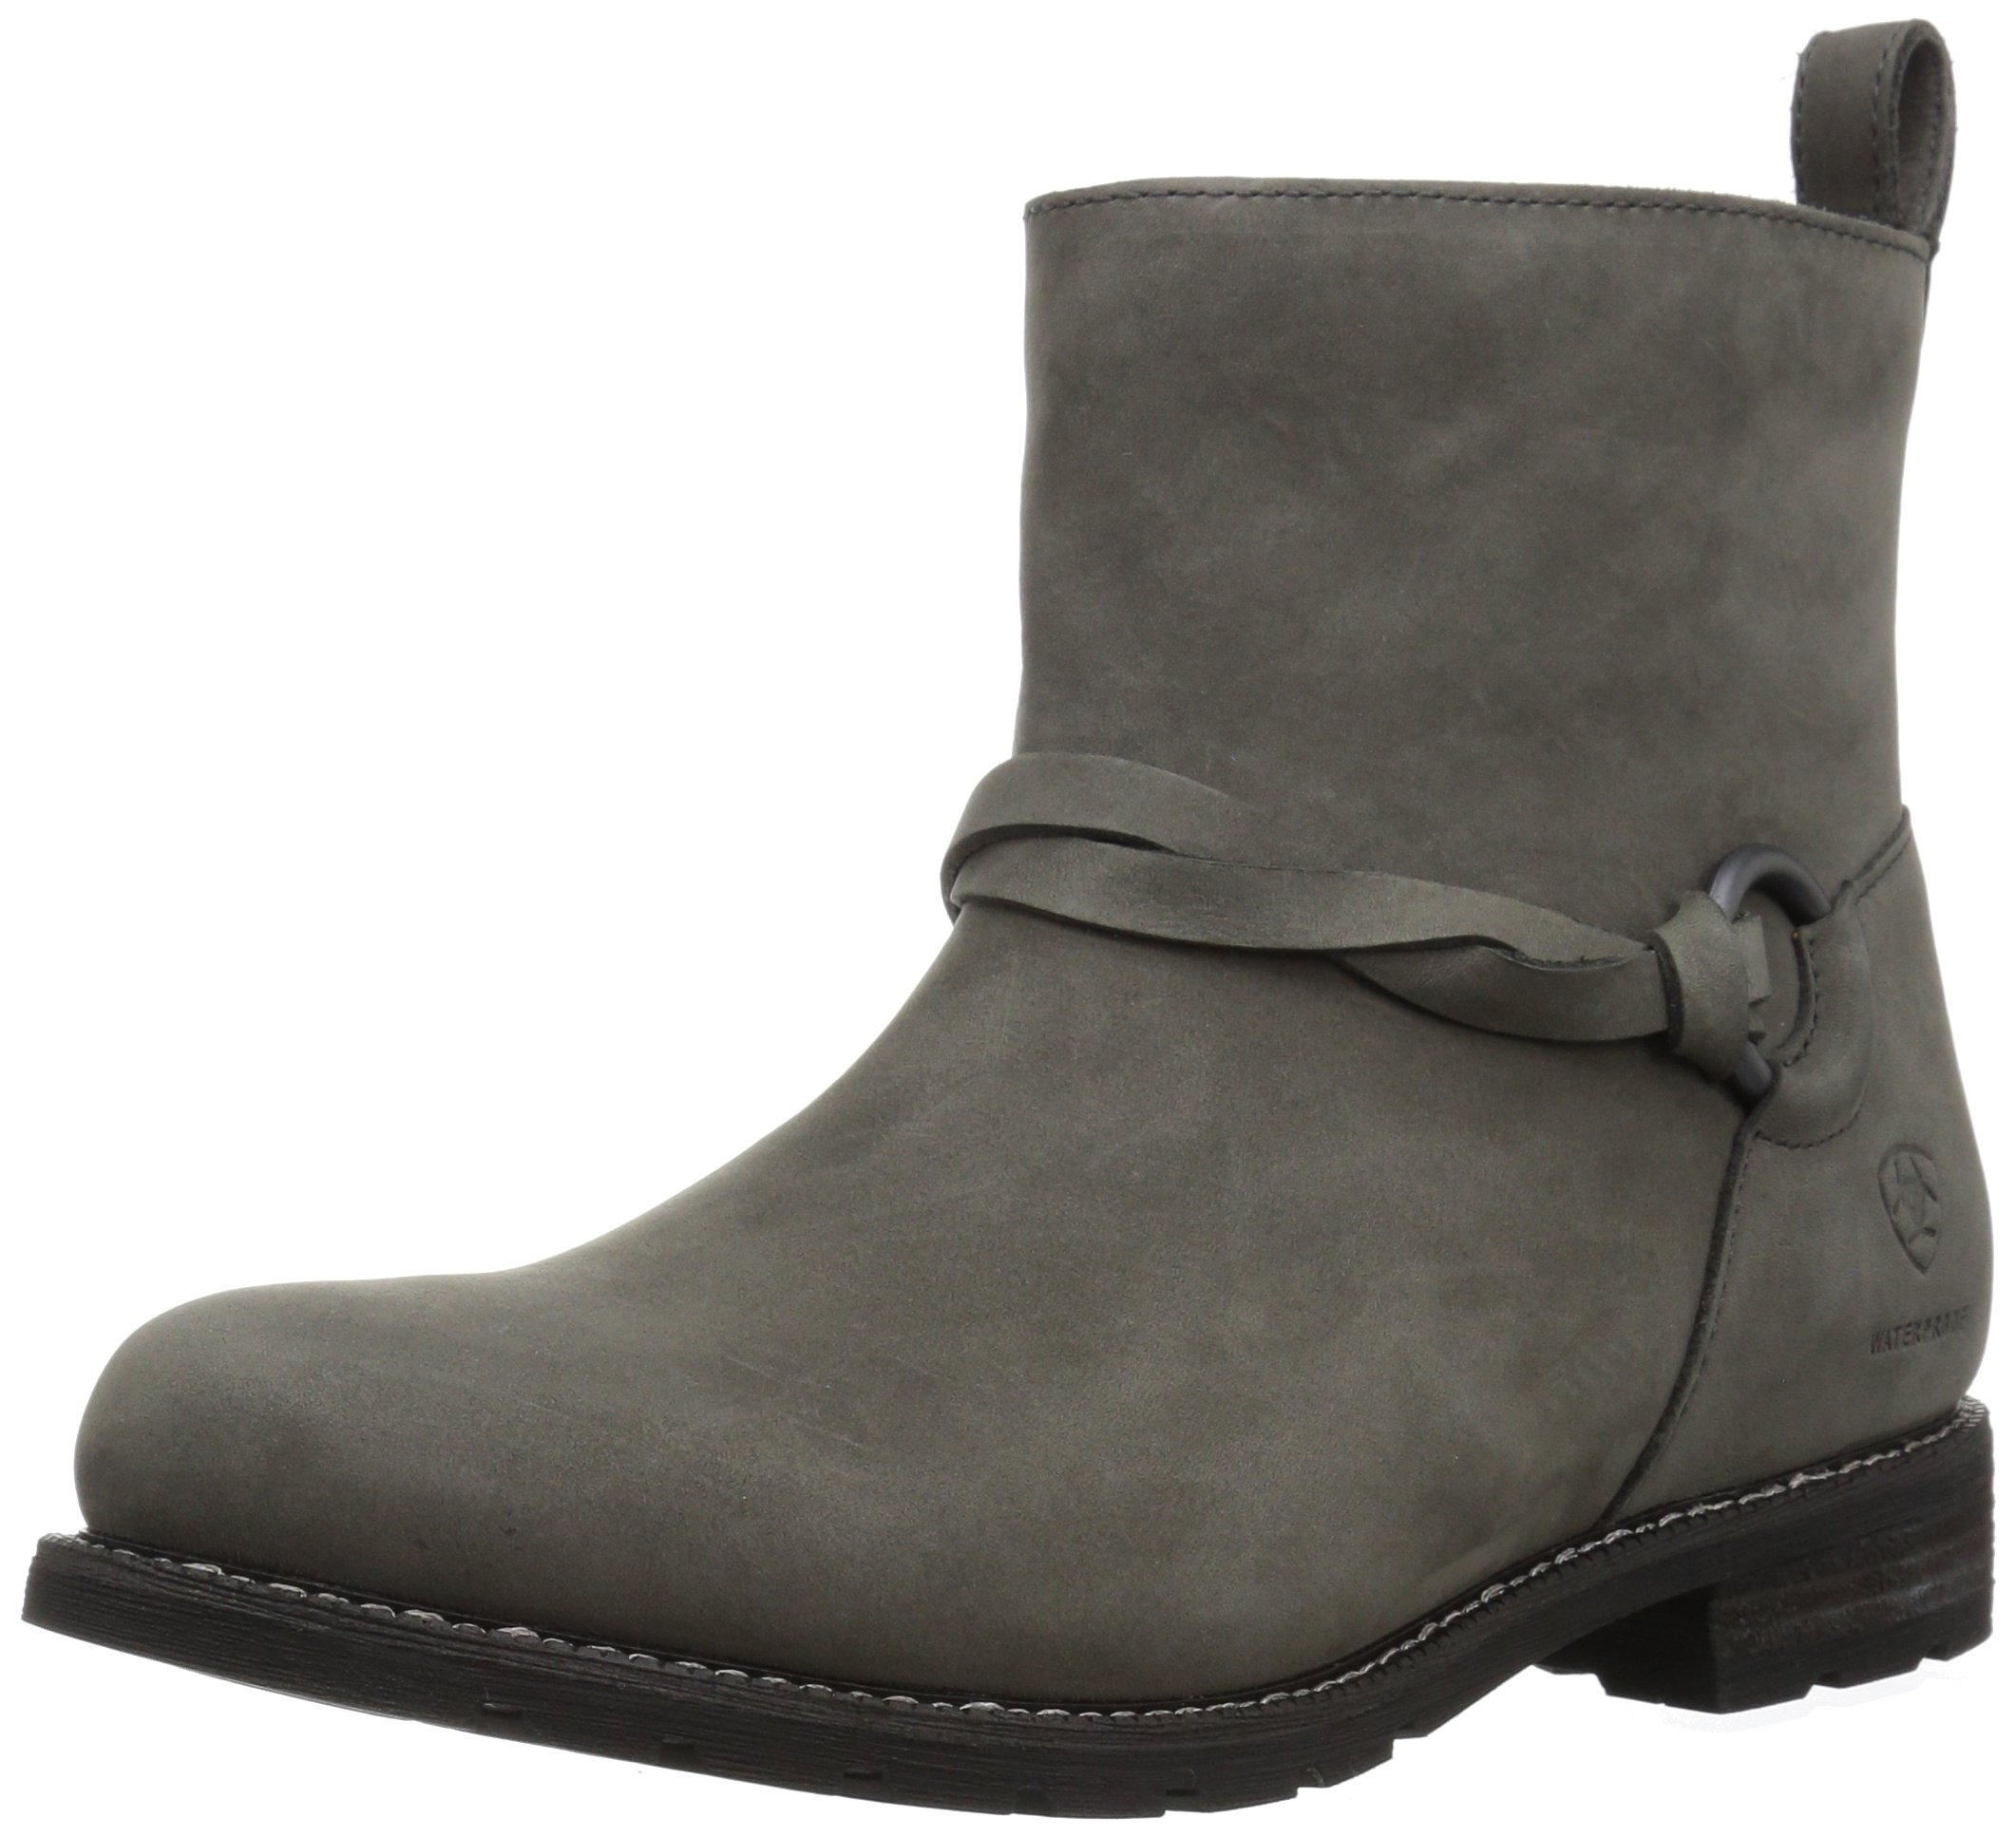 Ariat Women's Witney H2O Work Boot, Storm, 8 B US